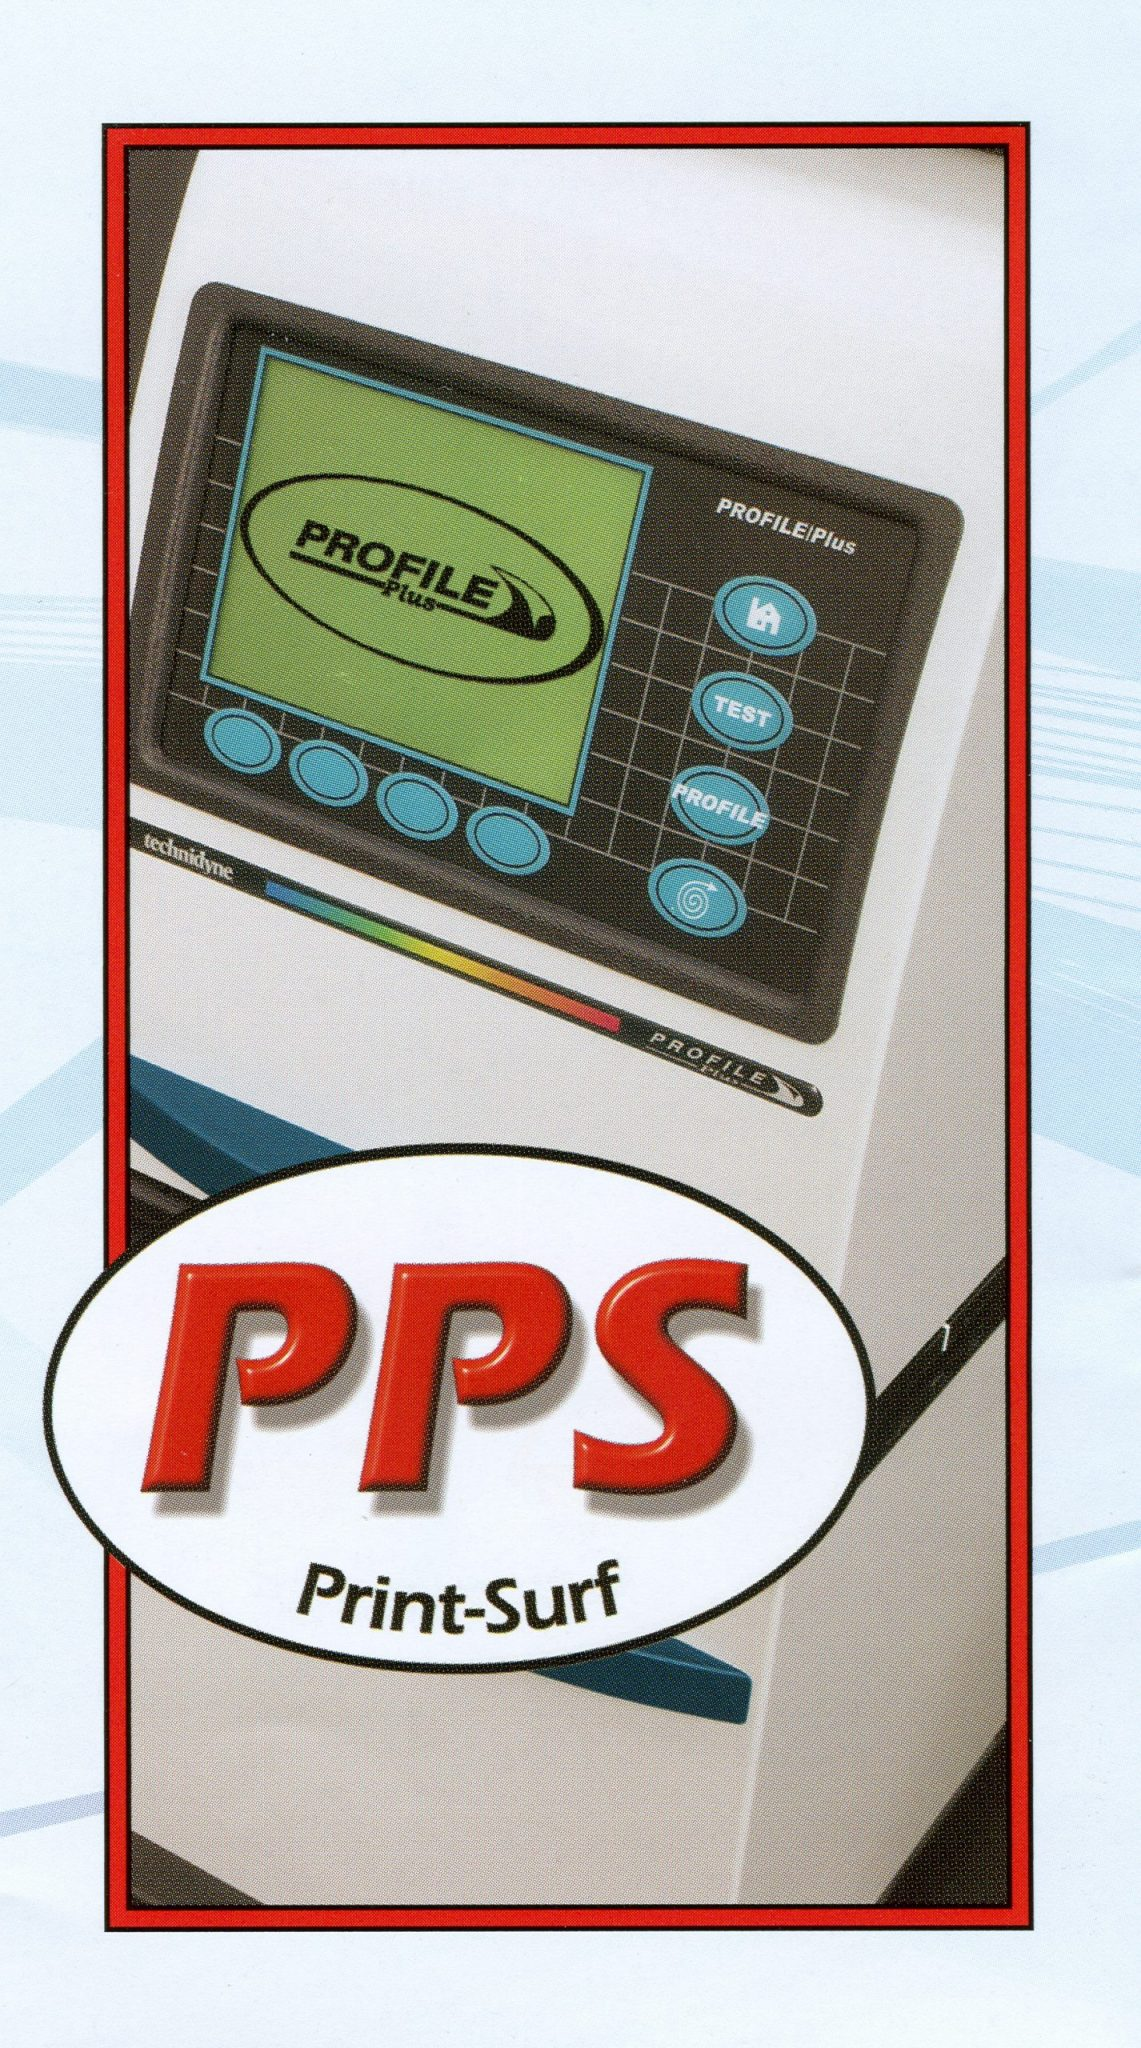 PROFILE Plus PPS – Technidyne Parker Print Surf